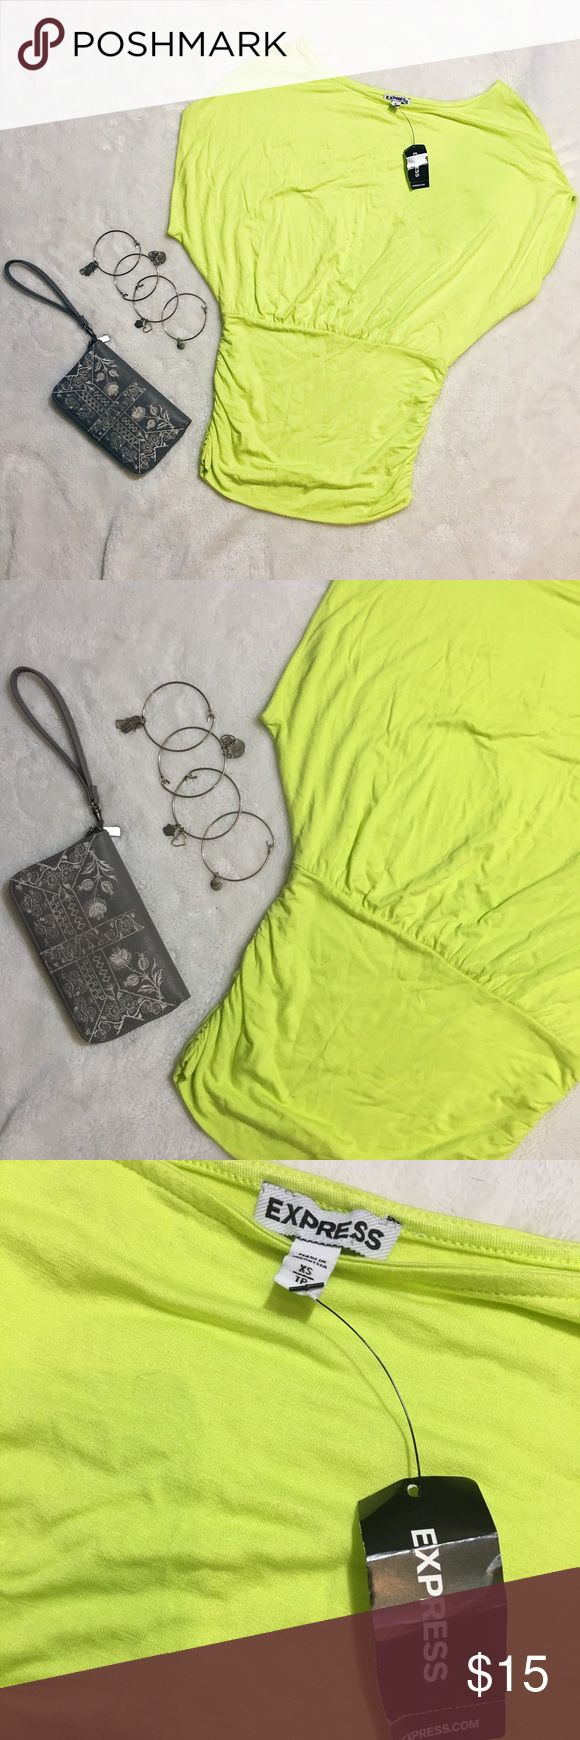 """NWT Express neon yellow top New with tags • Size XSmall • *All measurements are approximate hand measurements taken while garment is laid flat. Double measurement where necessary (i.e. bust)* Bust 21"""" Waist 18"""" Shoulders 12 1/2"""" Length 25"""" Express Tops Blouses"""